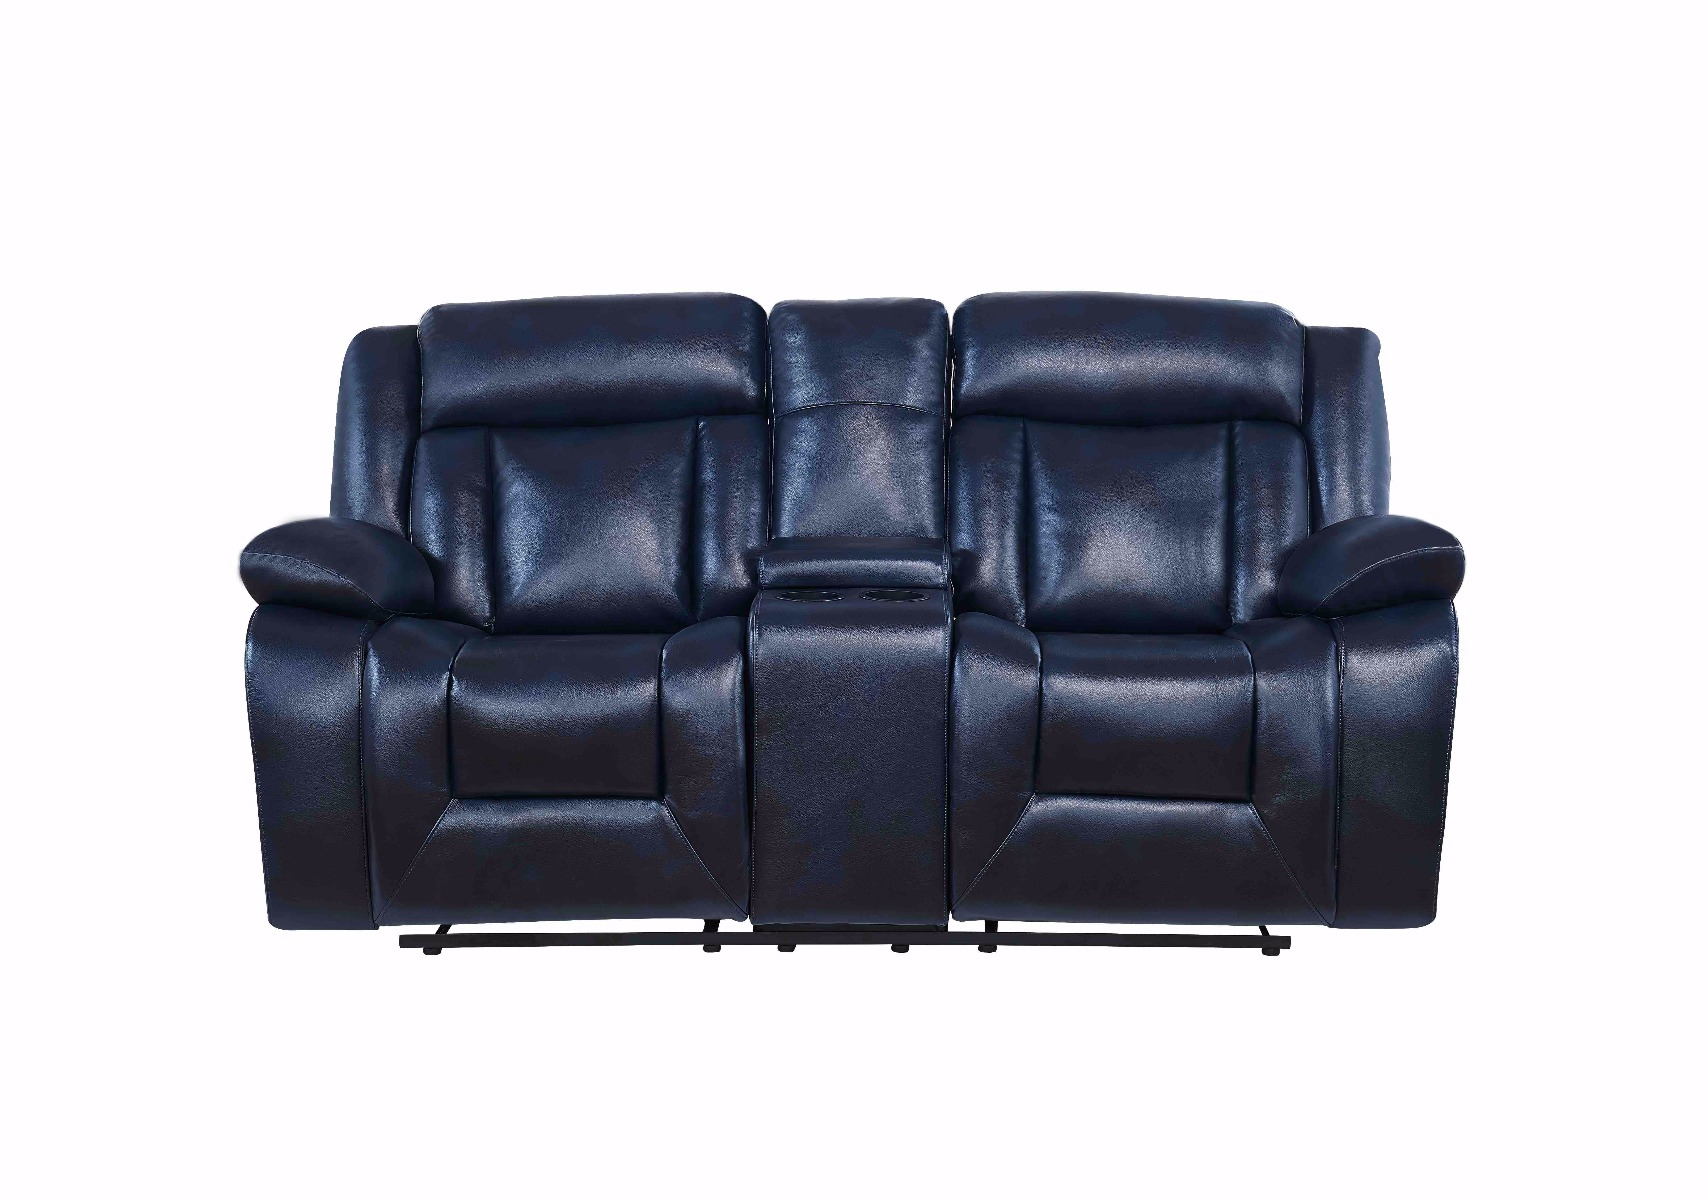 Pleasant U8036 Blue Leather Gel Console Reclining Loveseat By Global Furniture Andrewgaddart Wooden Chair Designs For Living Room Andrewgaddartcom